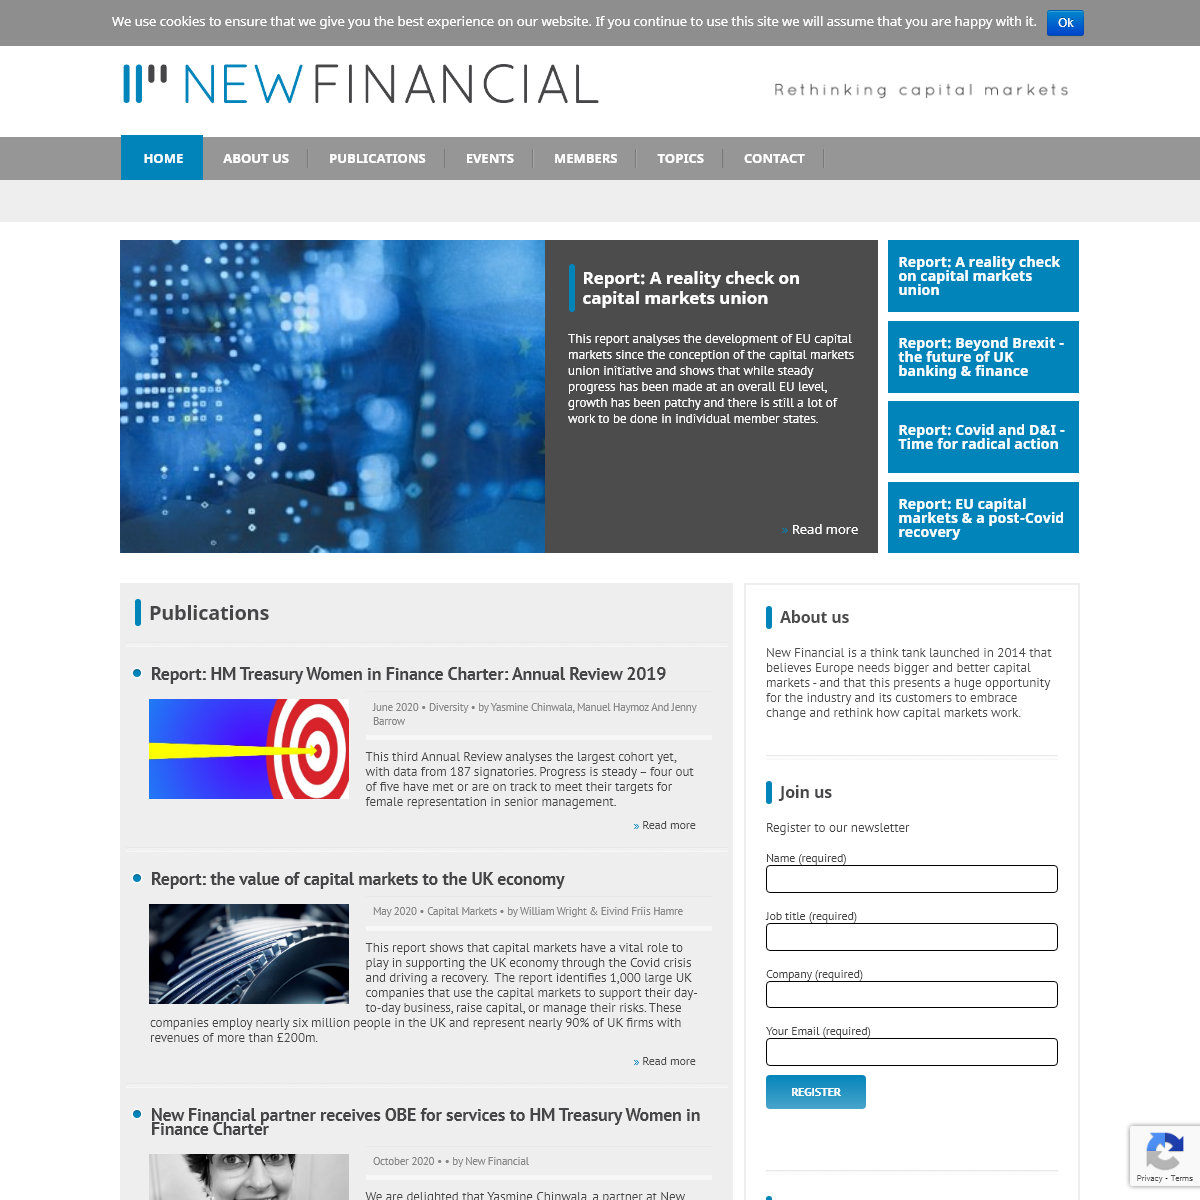 New Financial - Forum and Think tank